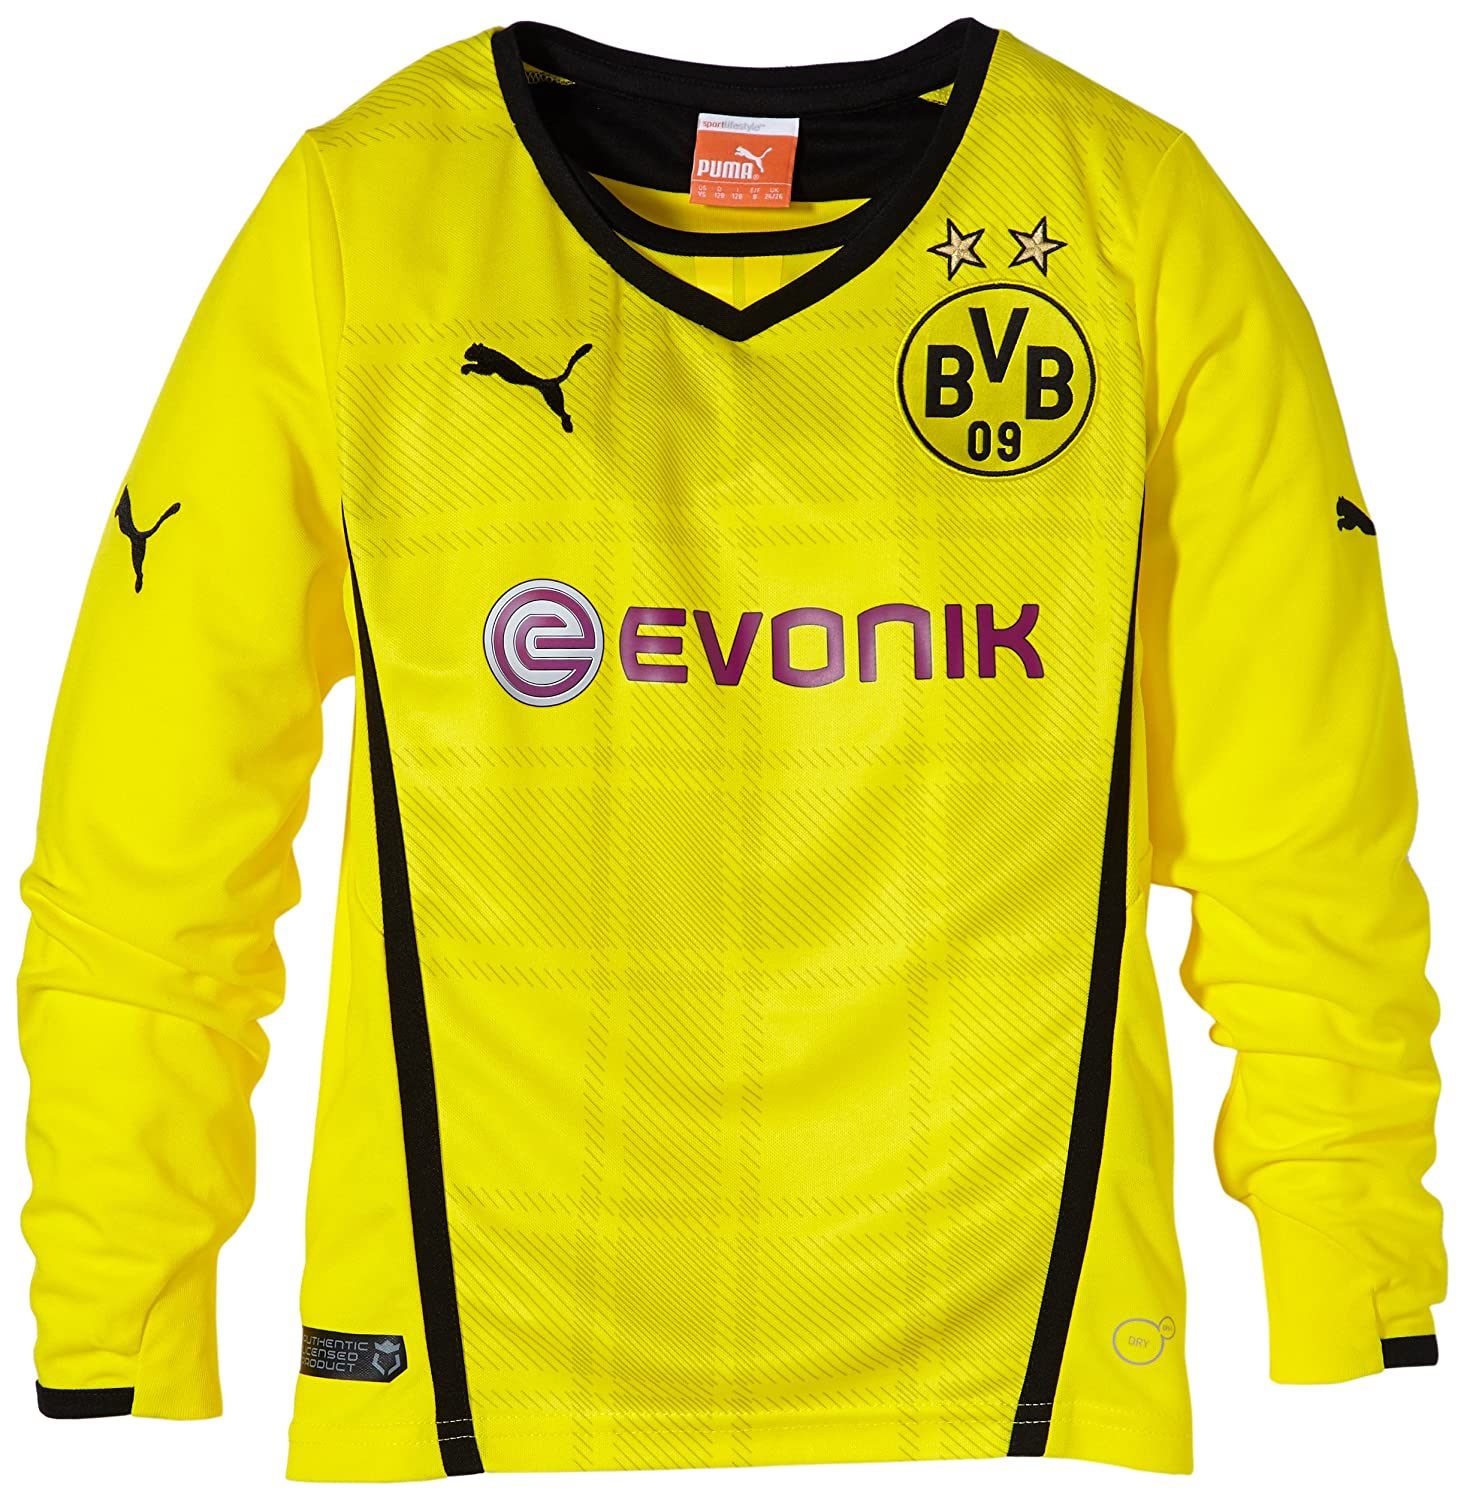 BVB Borussia Dortmund Training Jersey Shirt Yellow Long Sleeve Kids PUMA